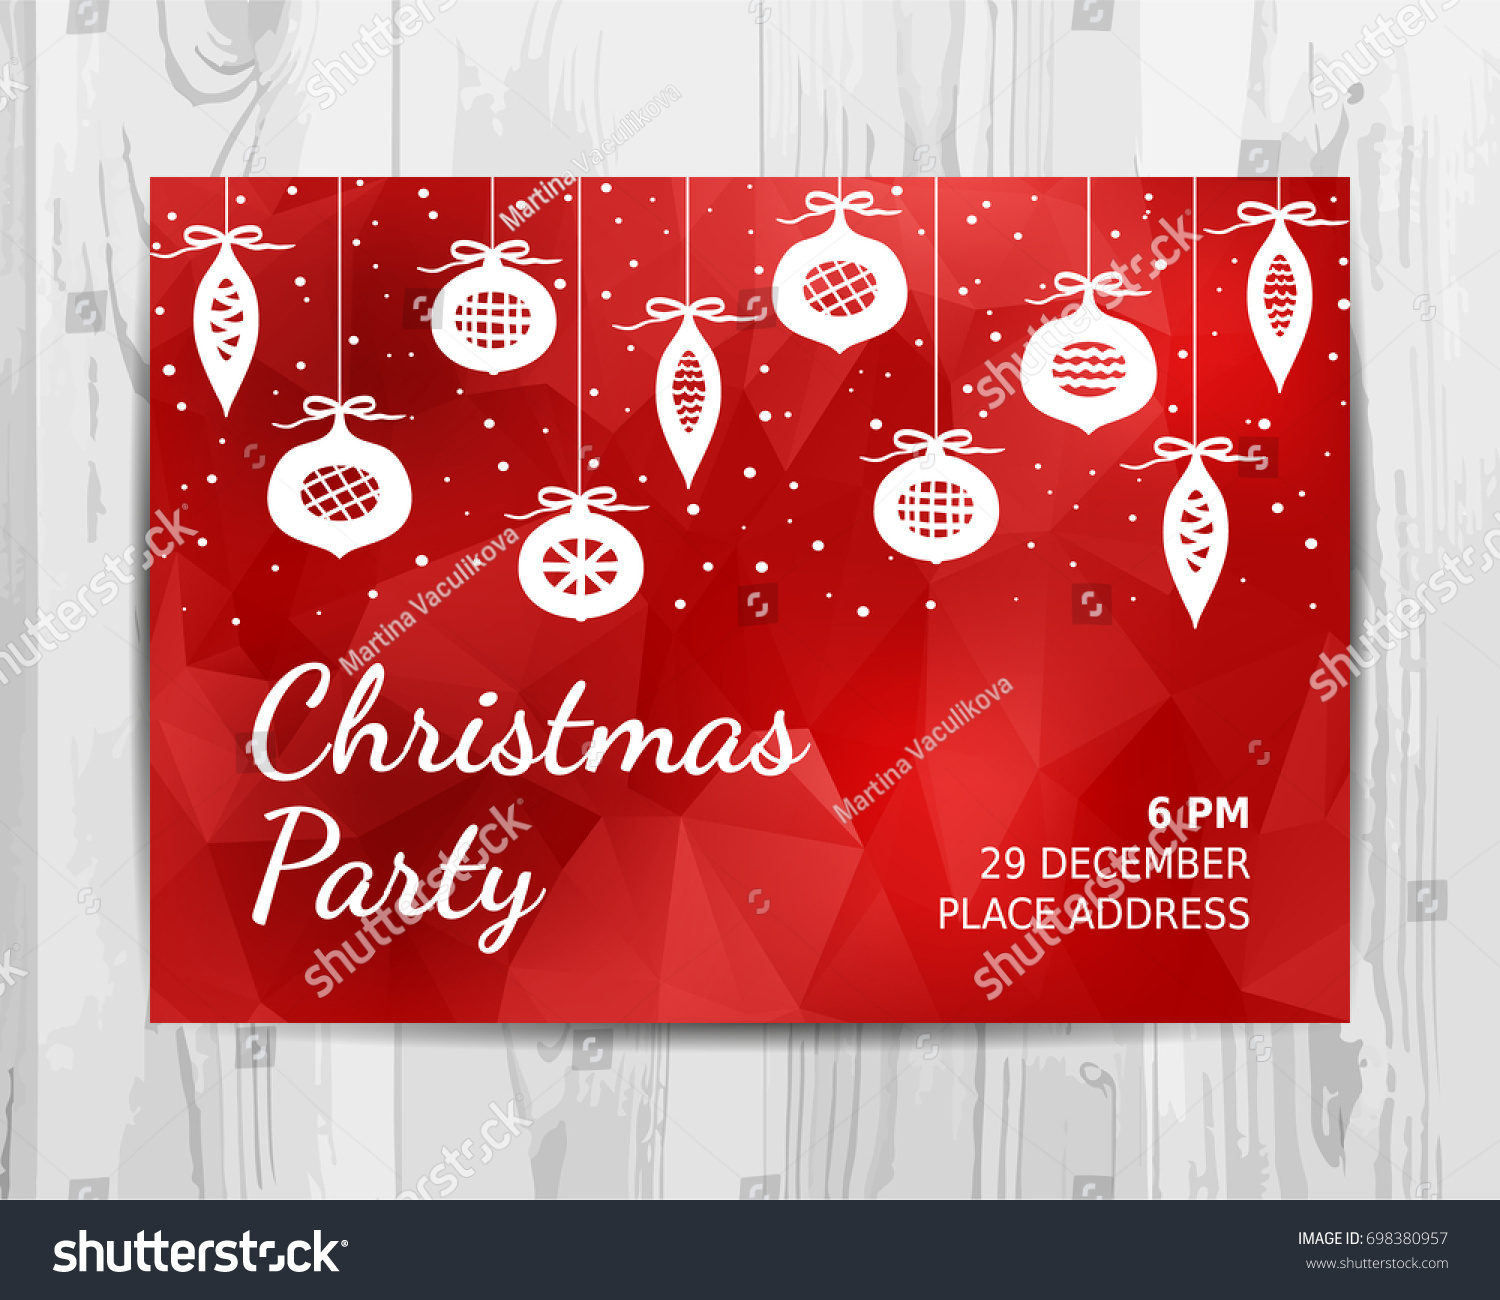 Amazing Eiffel Tower Party Invitations Ensign - Invitations and ...